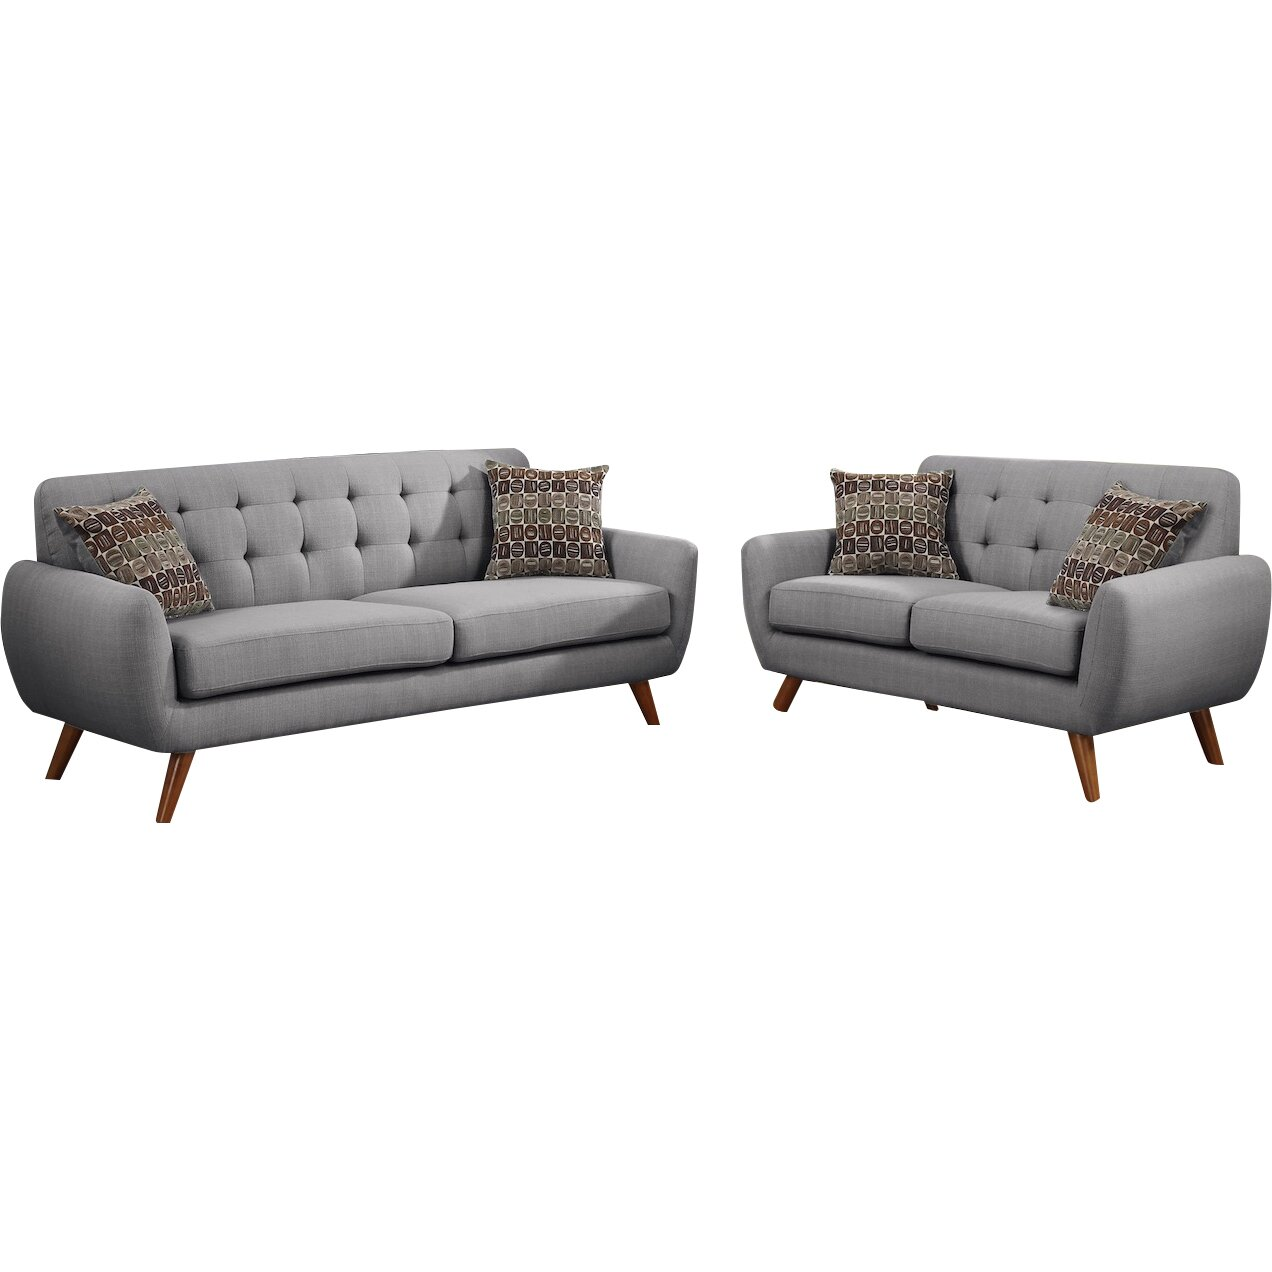 Infini Furnishings Modern Retro Sofa And Loveseat Reviews Wayfair